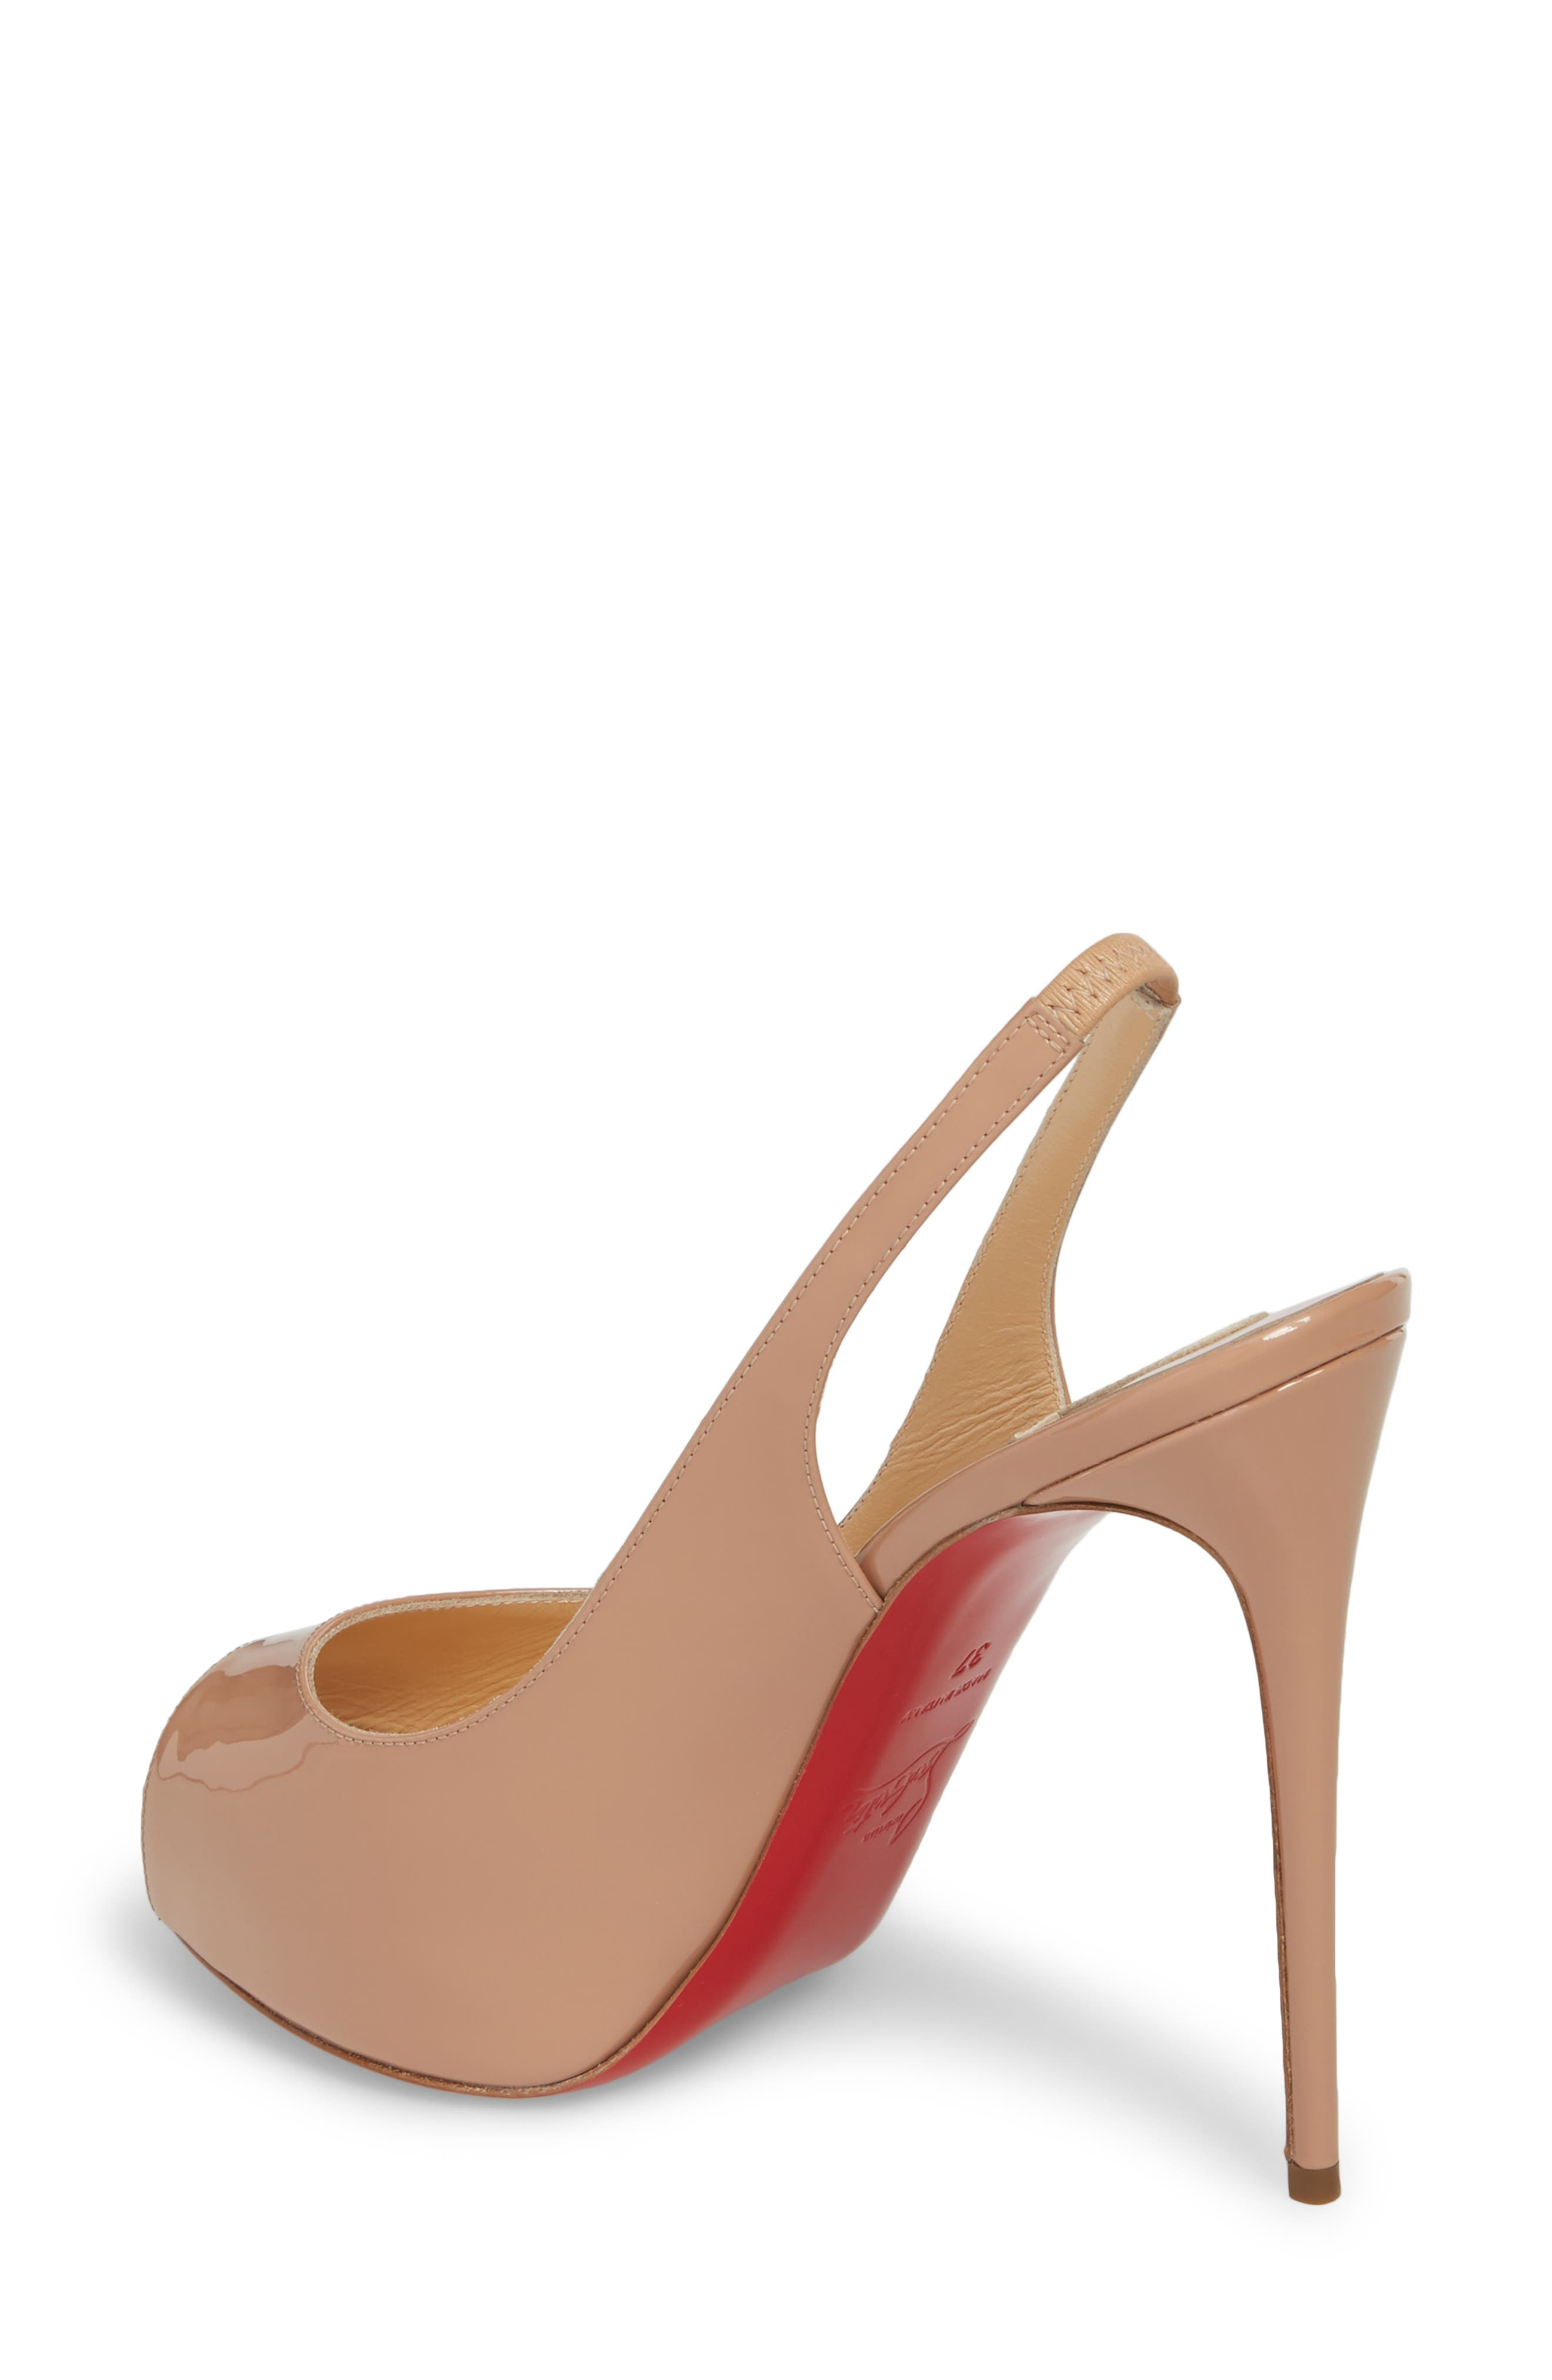 CHRISTIAN LOUBOUTIN,                             Private Number Peep Toe Pump,                             Alternate thumbnail 2, color,                             NUDE